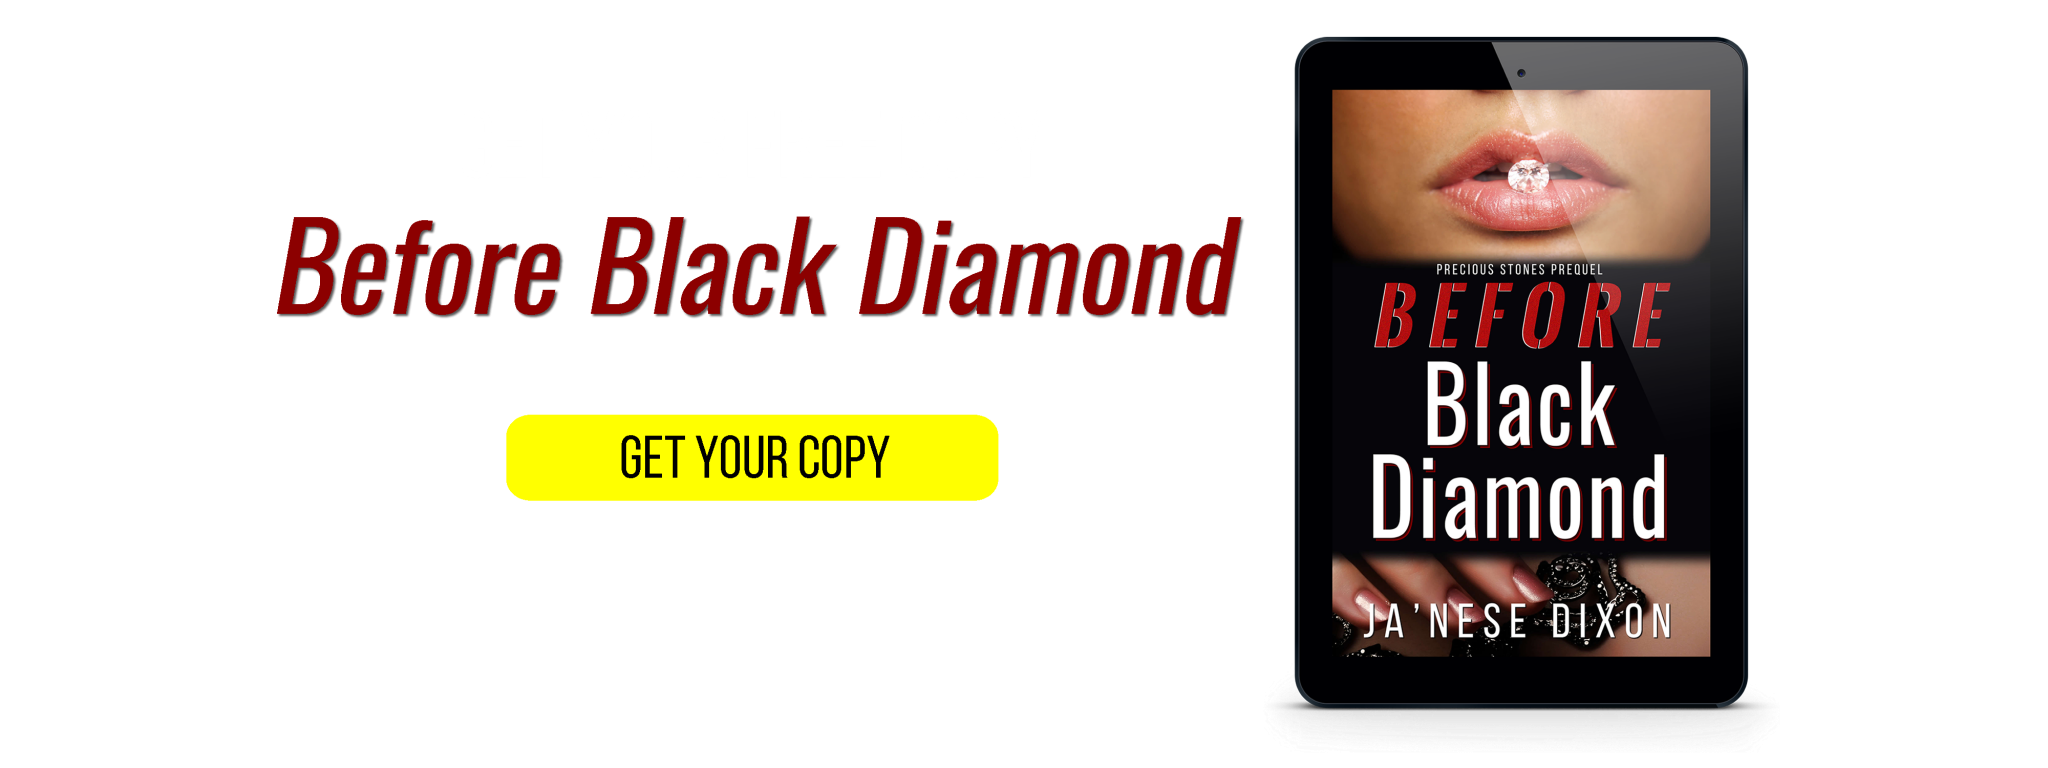 Get YOUR Copy of Before Black Diamond by Ja'Nese Dixon